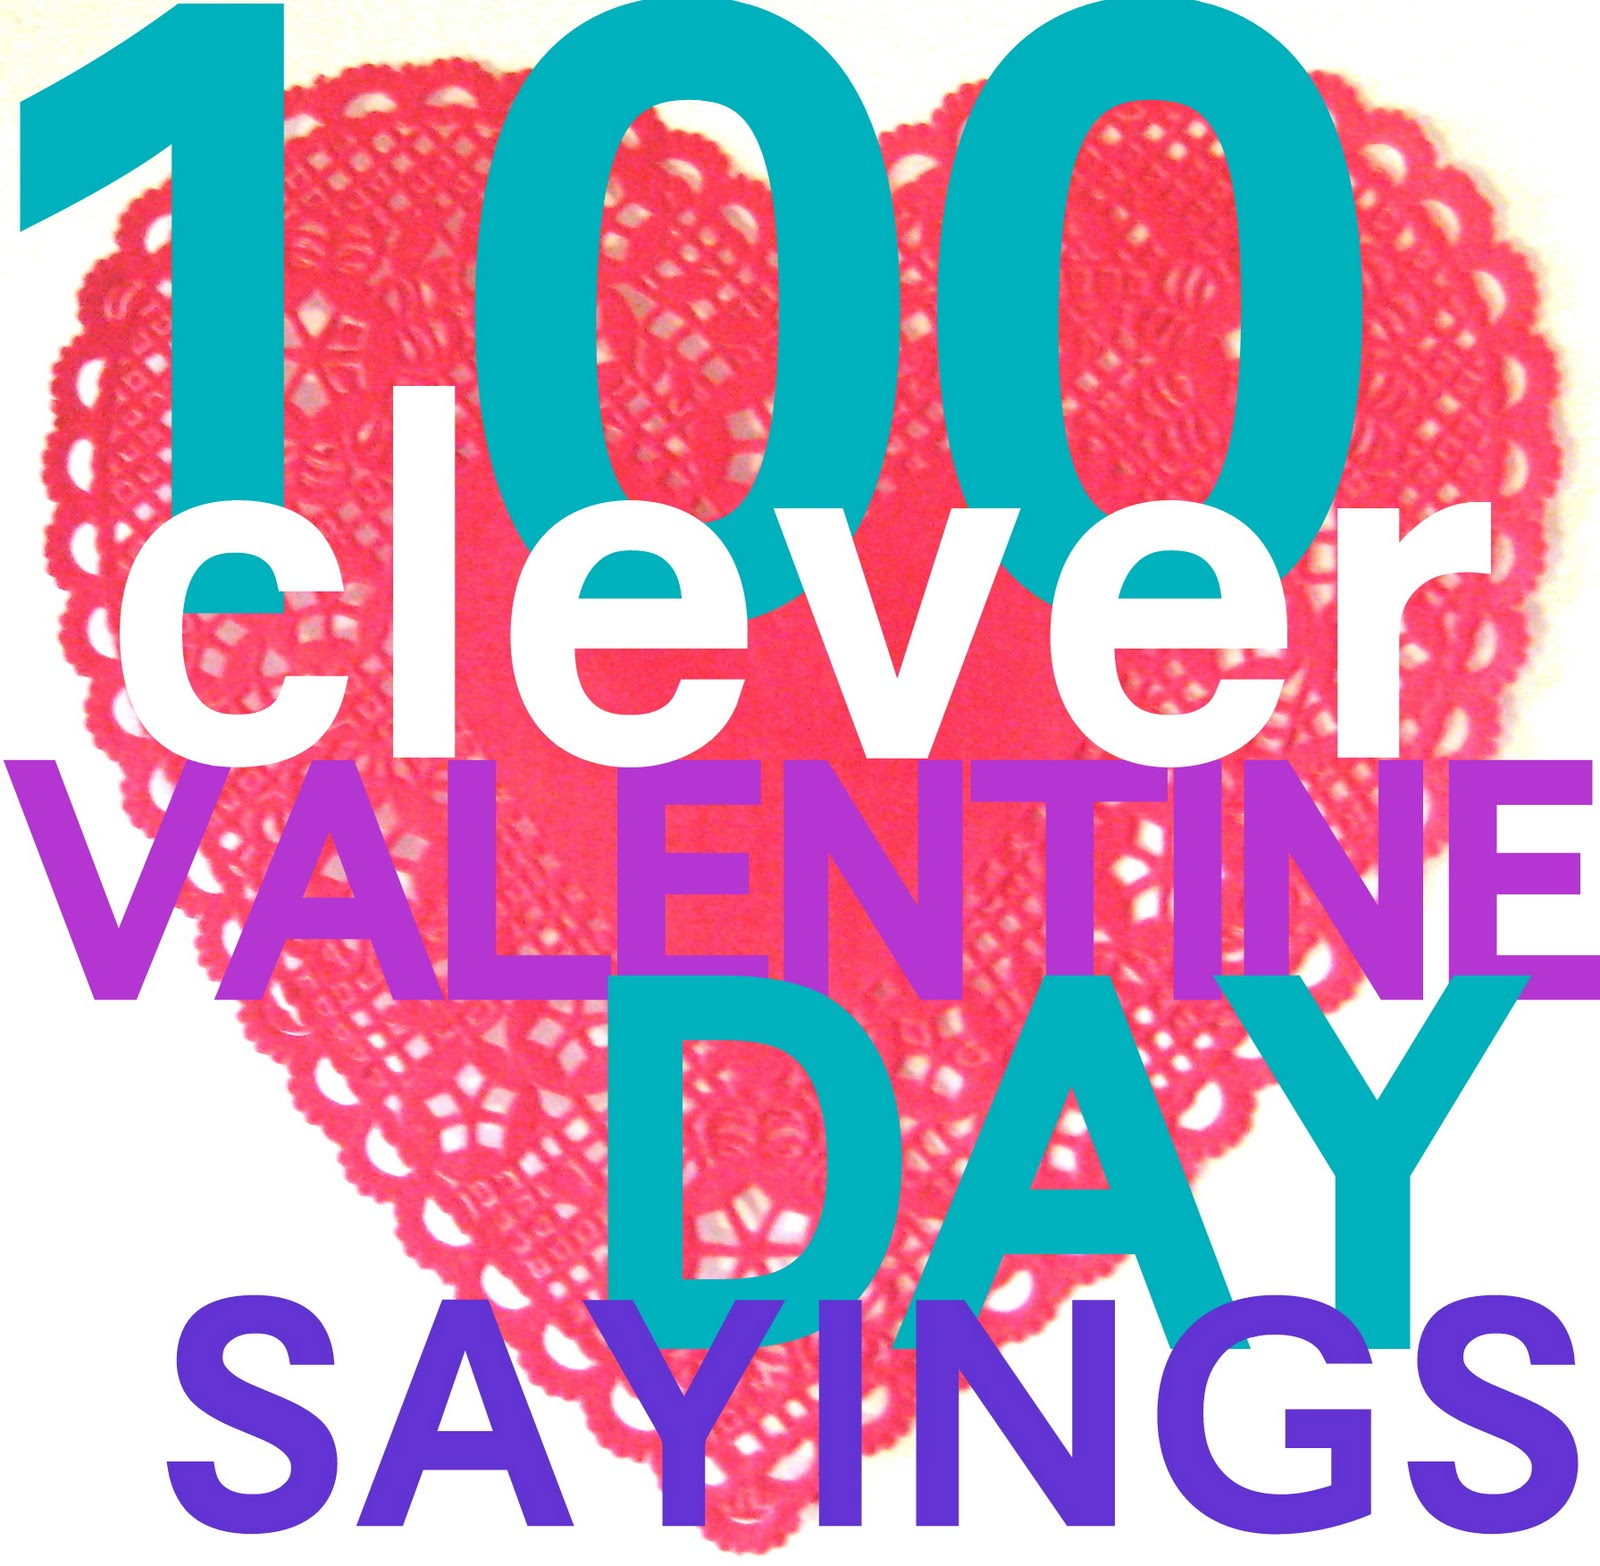 150 Clever Valentines Day Sayings CRAFT